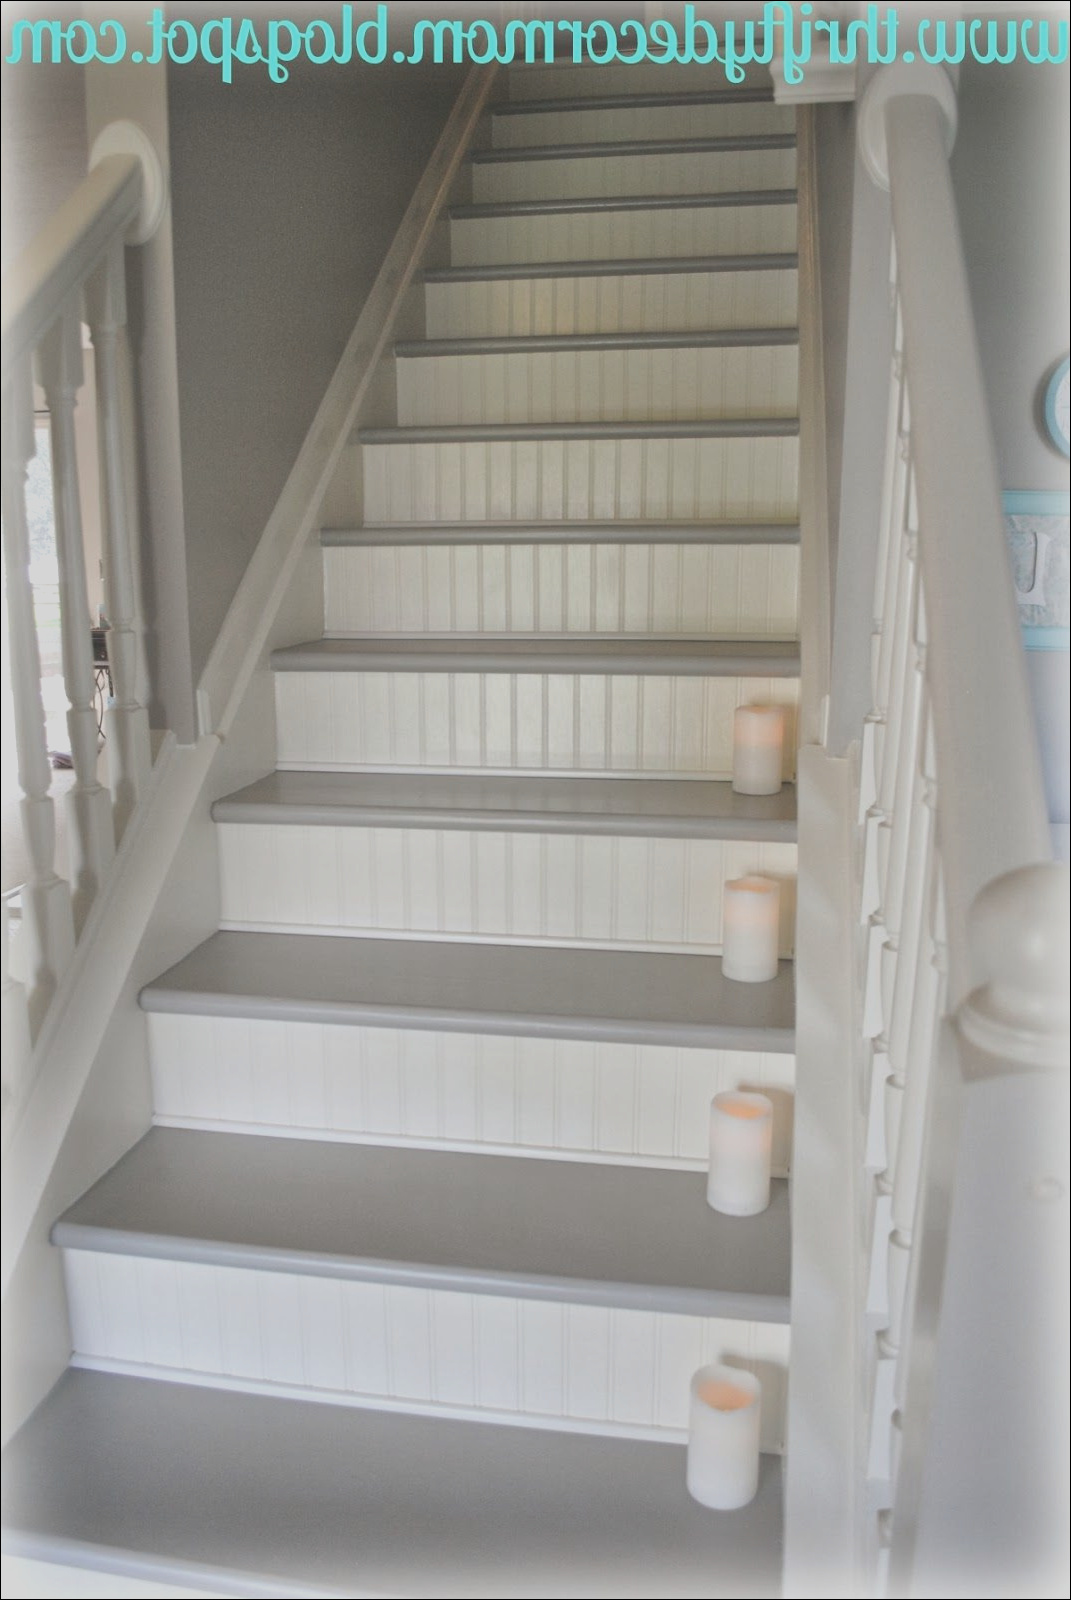 should hardwood floors match stairs